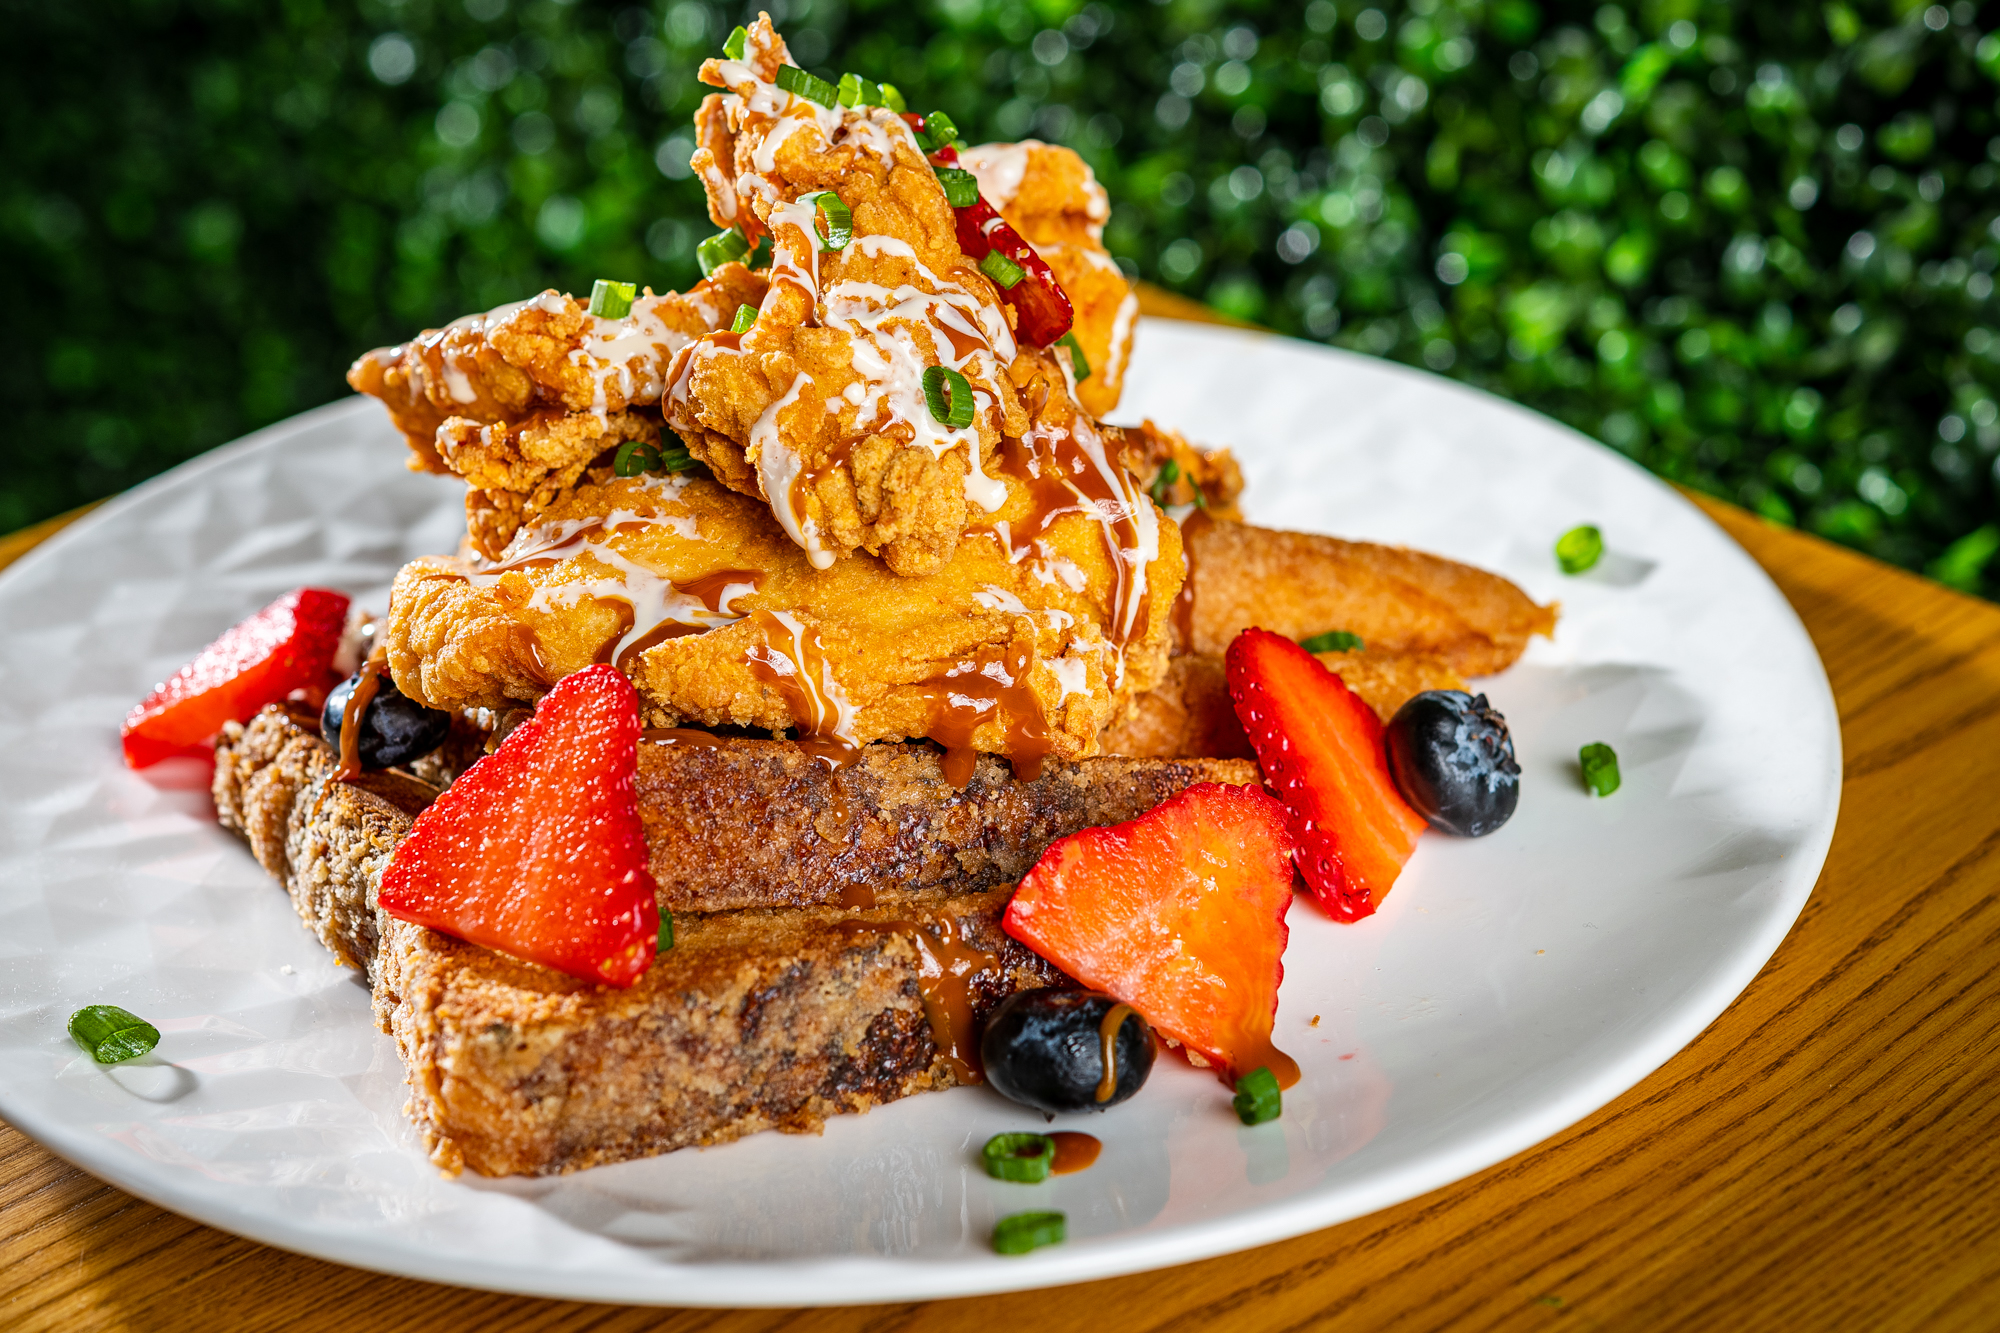 Fried chicken comes with French toast soaked in ice cream base at KitchenCray